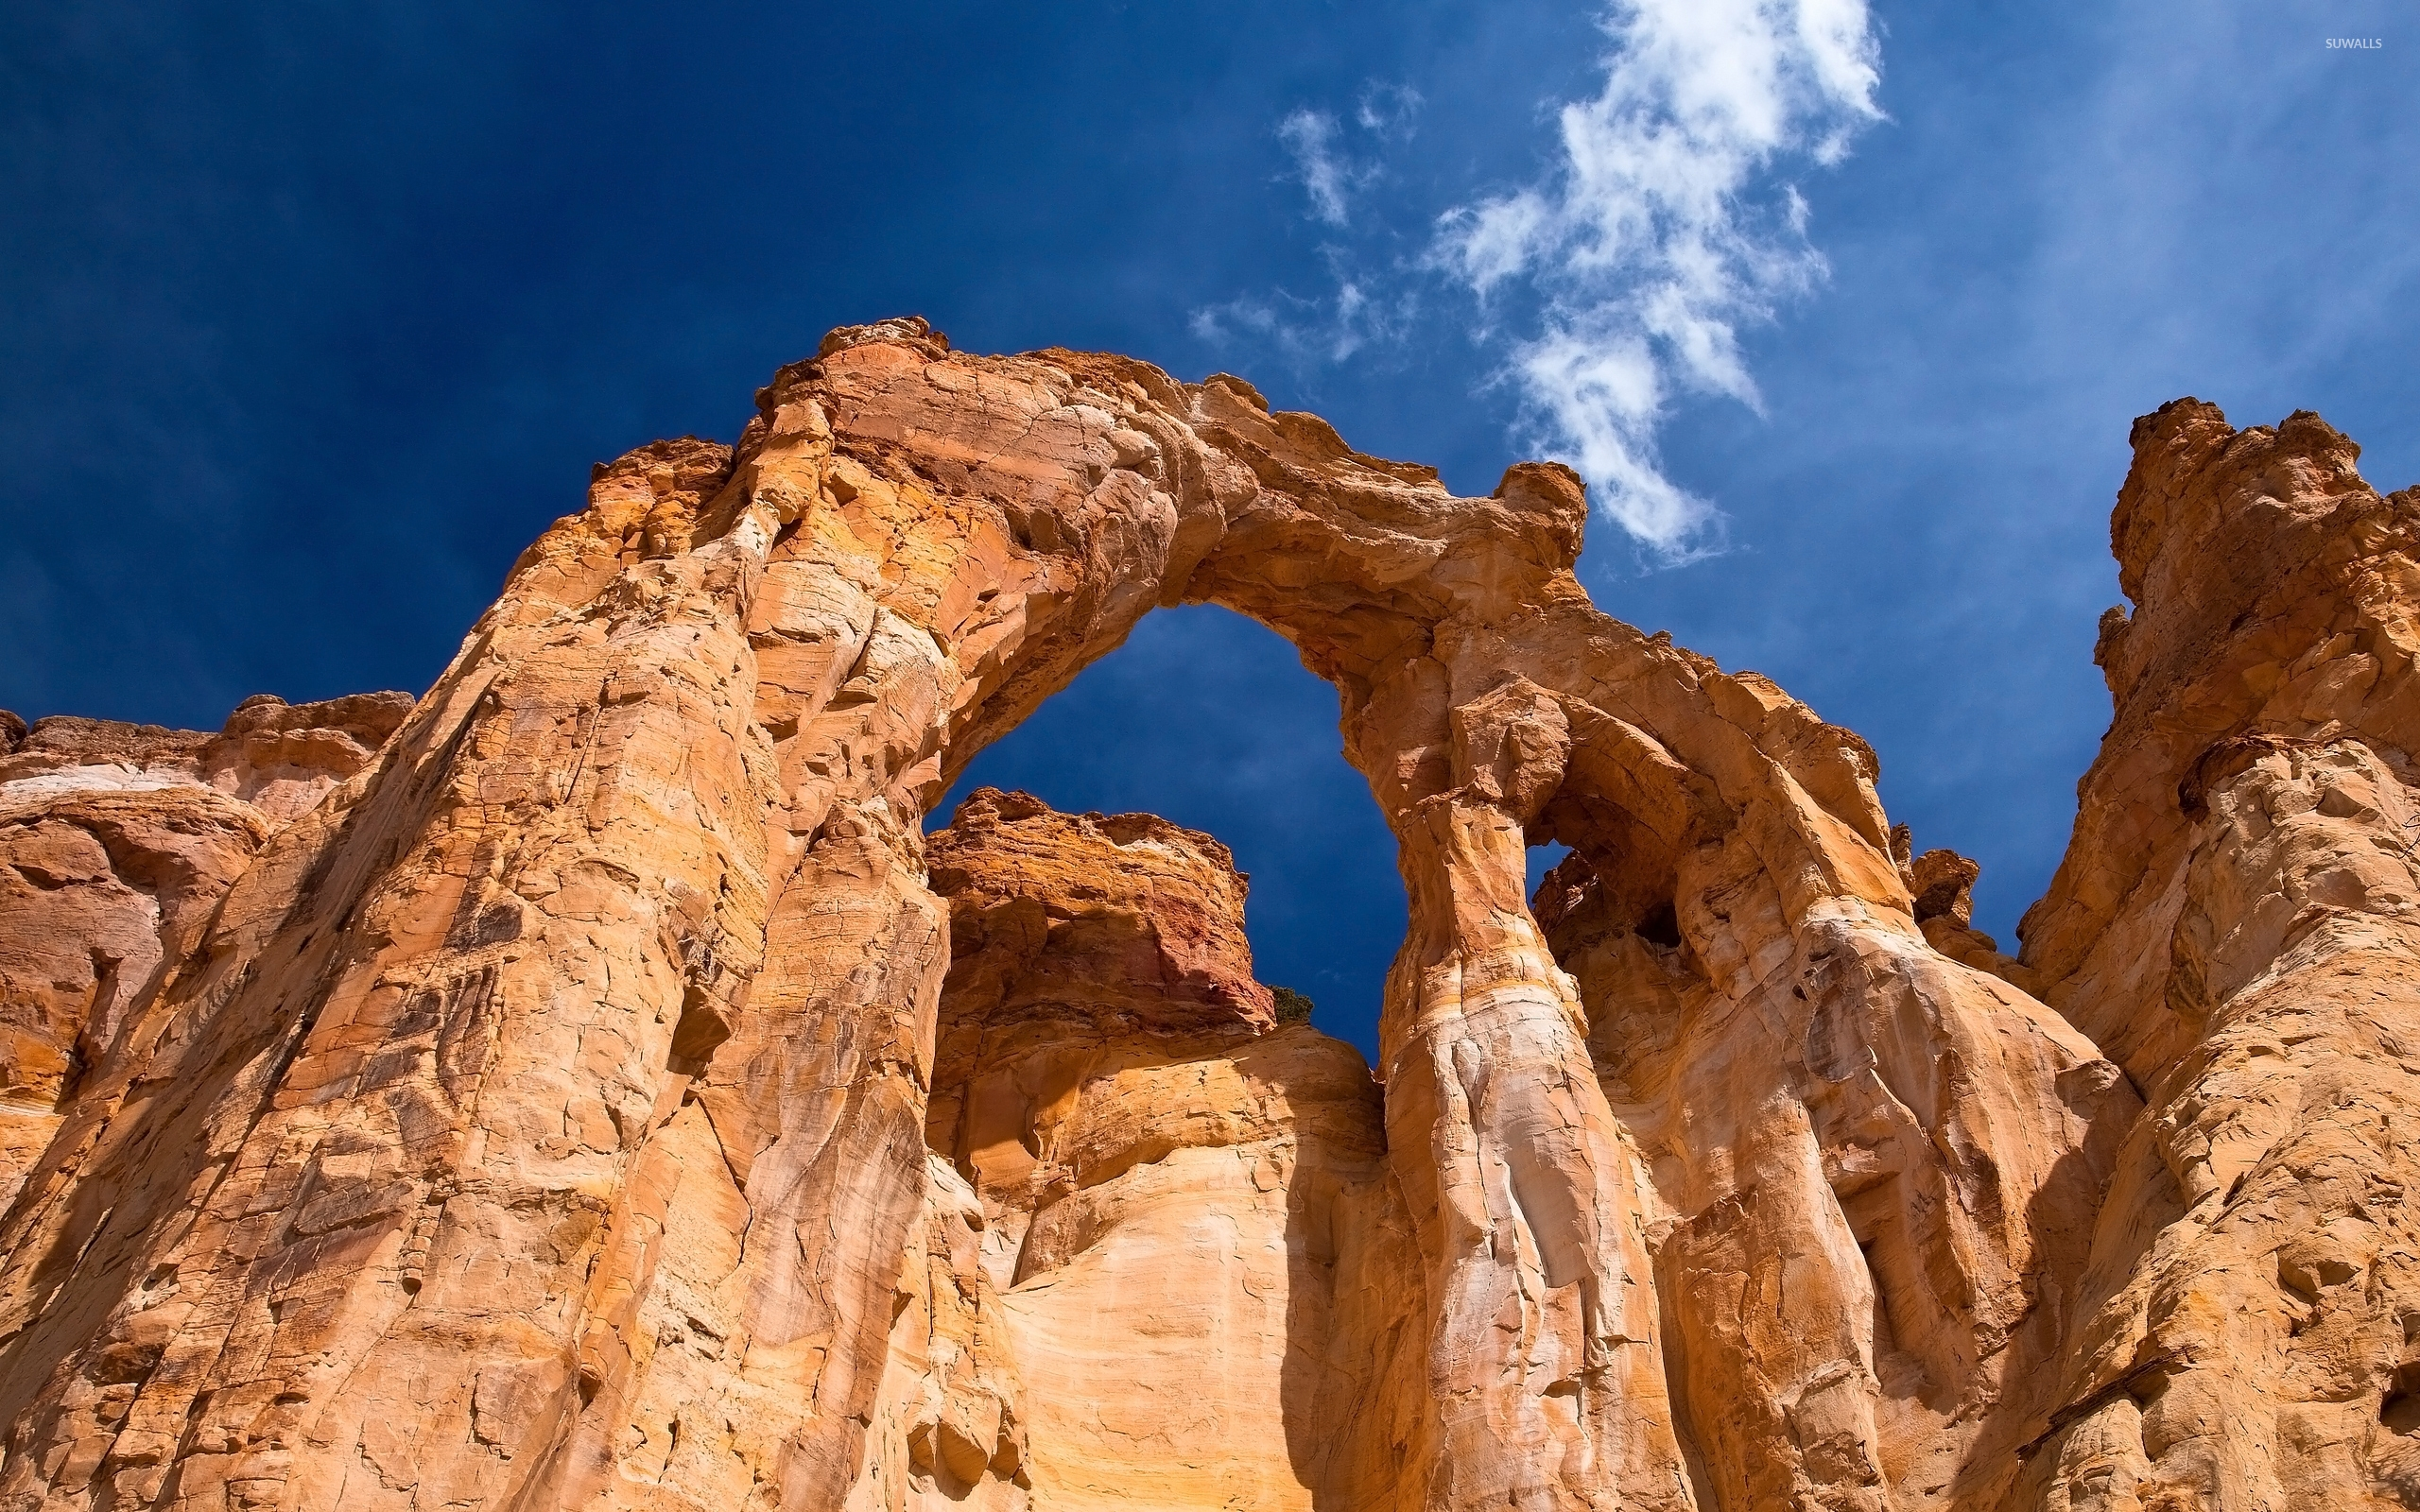 The Rock Quotes Wallpaper Hd Free Download Rusty Rocky Arch In Arches National Park Wallpaper